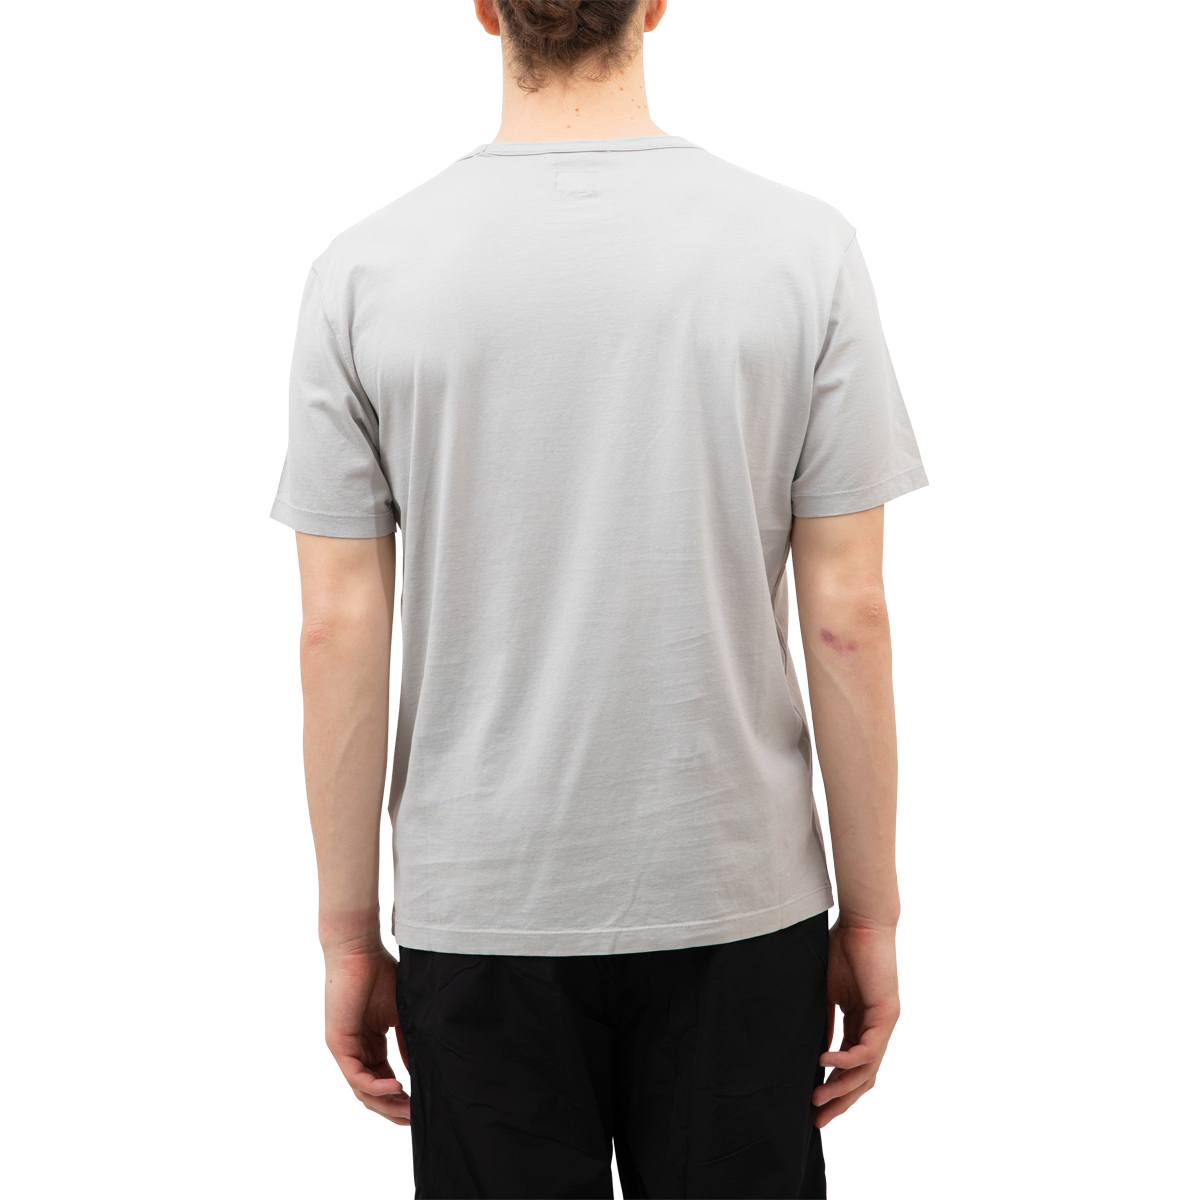 CP Company Old Chic Makò Jersey Chest Pocket T-Shirt